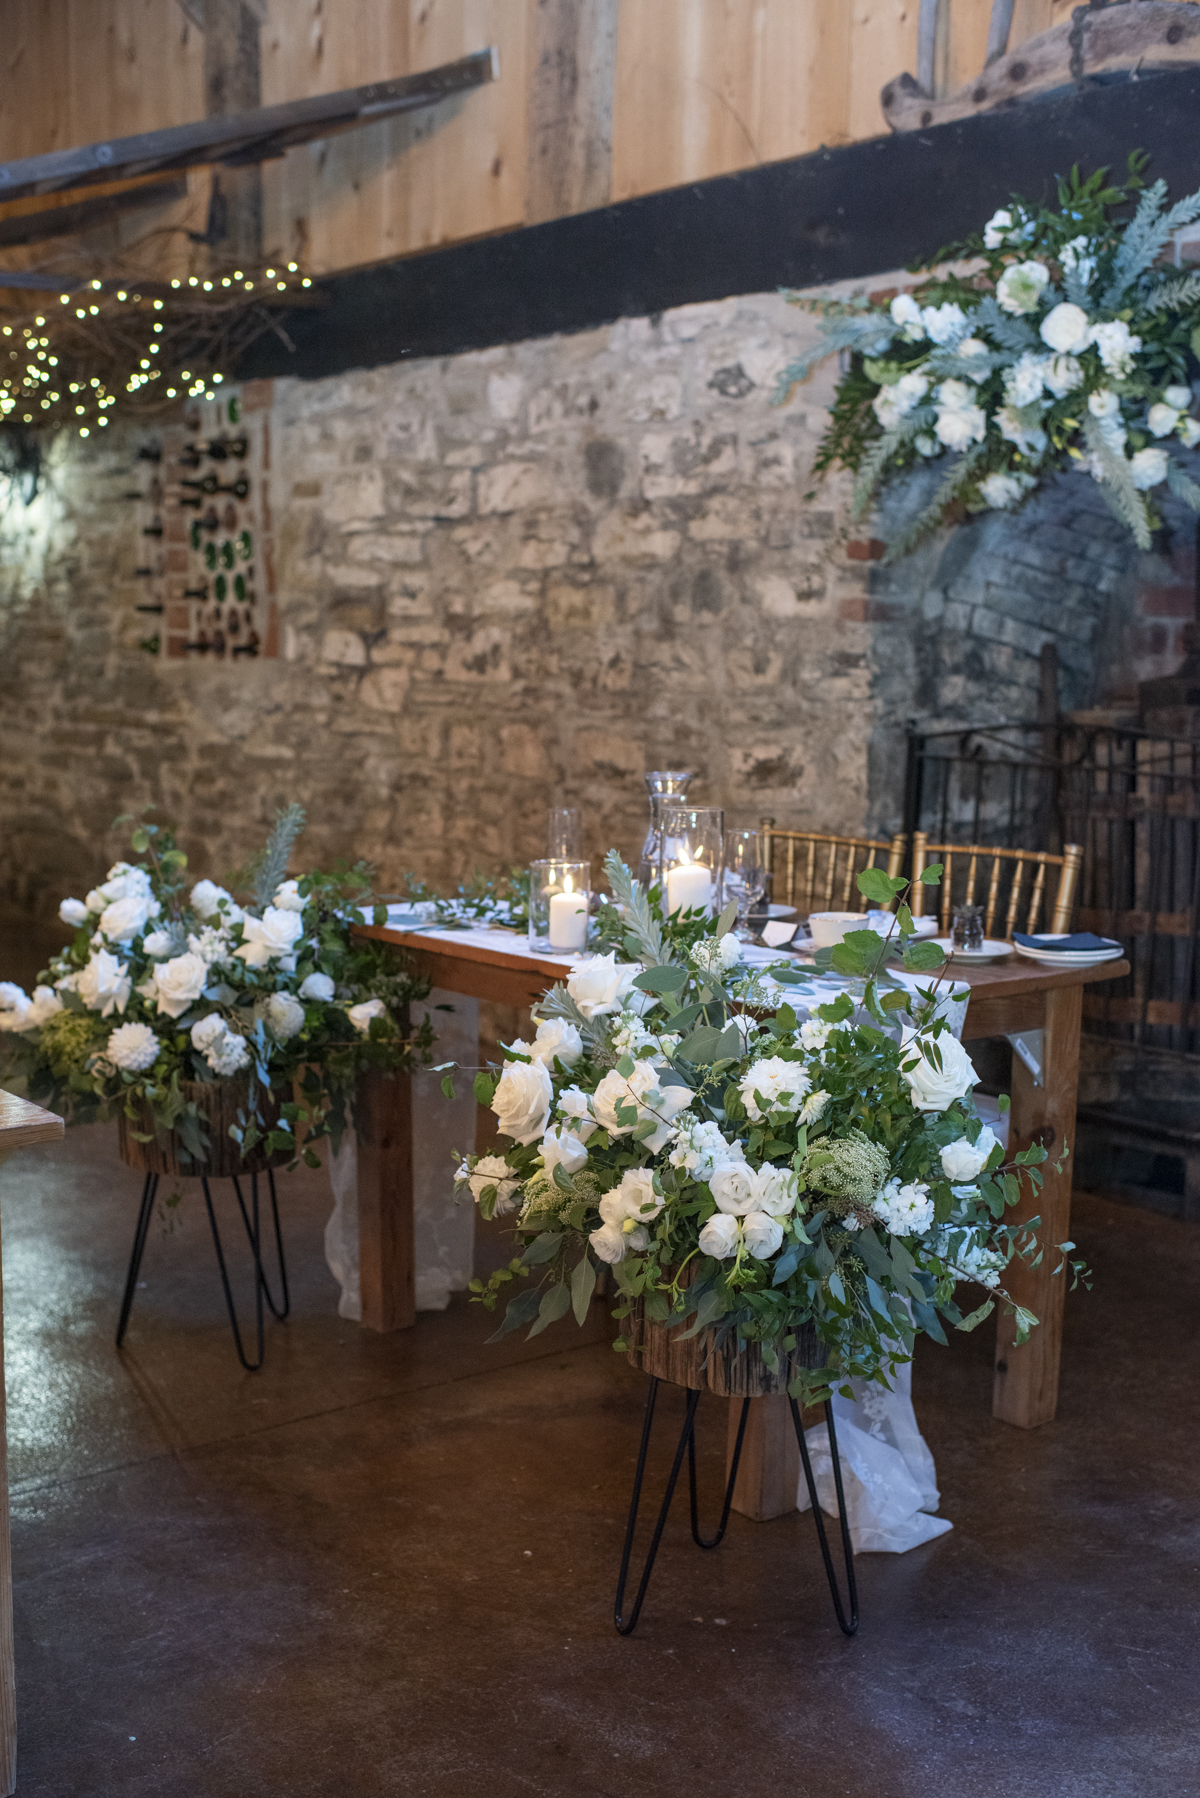 Sweetheart table surrounded by white and green flowers